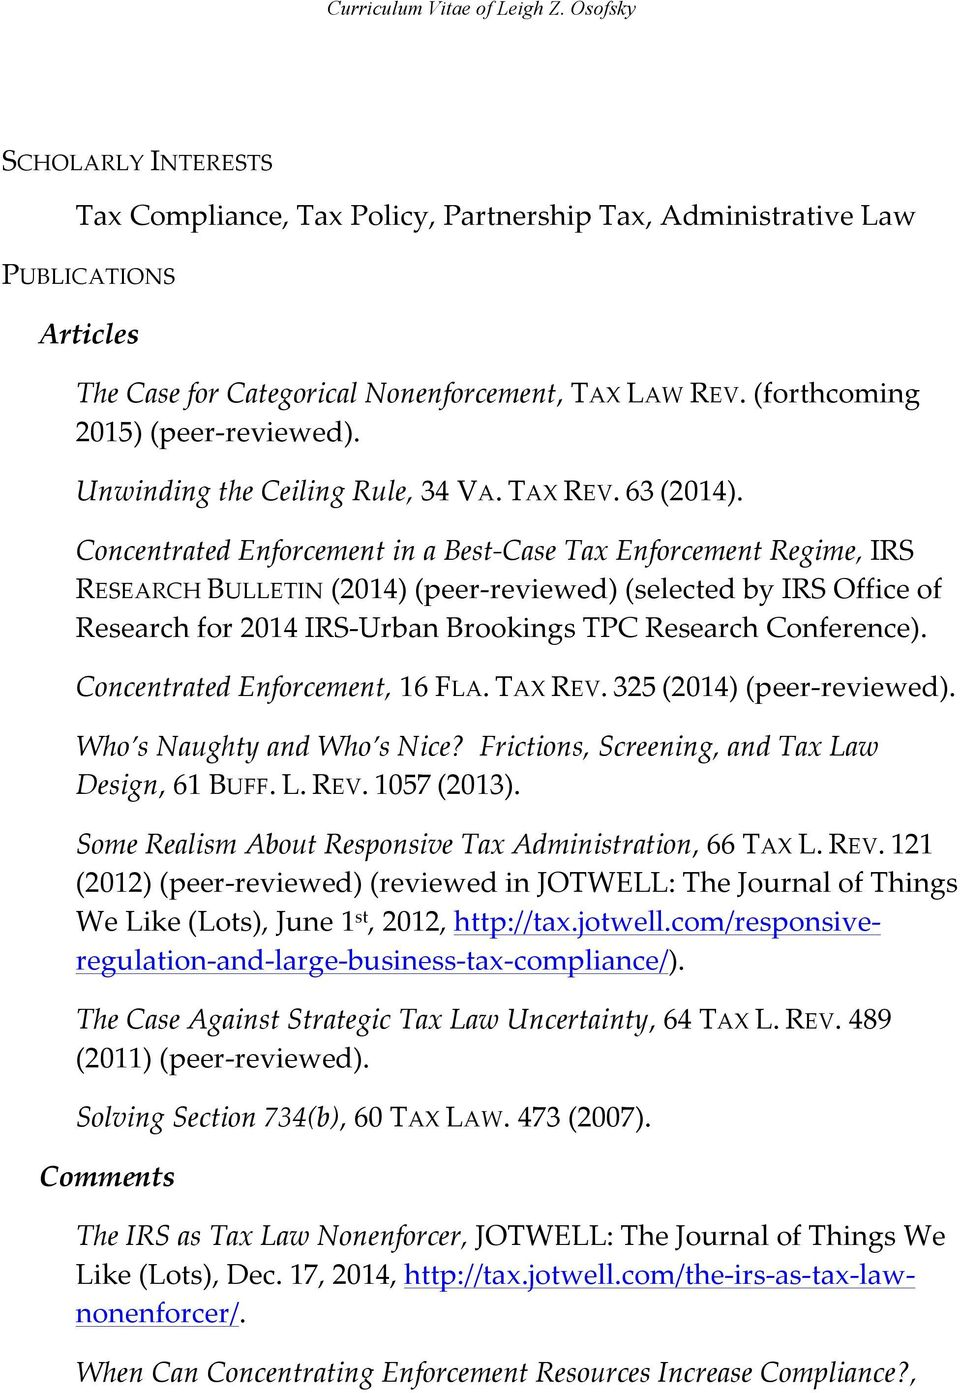 Concentrated Enforcement in a Best- Case Tax Enforcement Regime, IRS RESEARCH BULLETIN (2014) (peer- reviewed) (selected by IRS Office of Research for 2014 IRS- Urban Brookings TPC Research